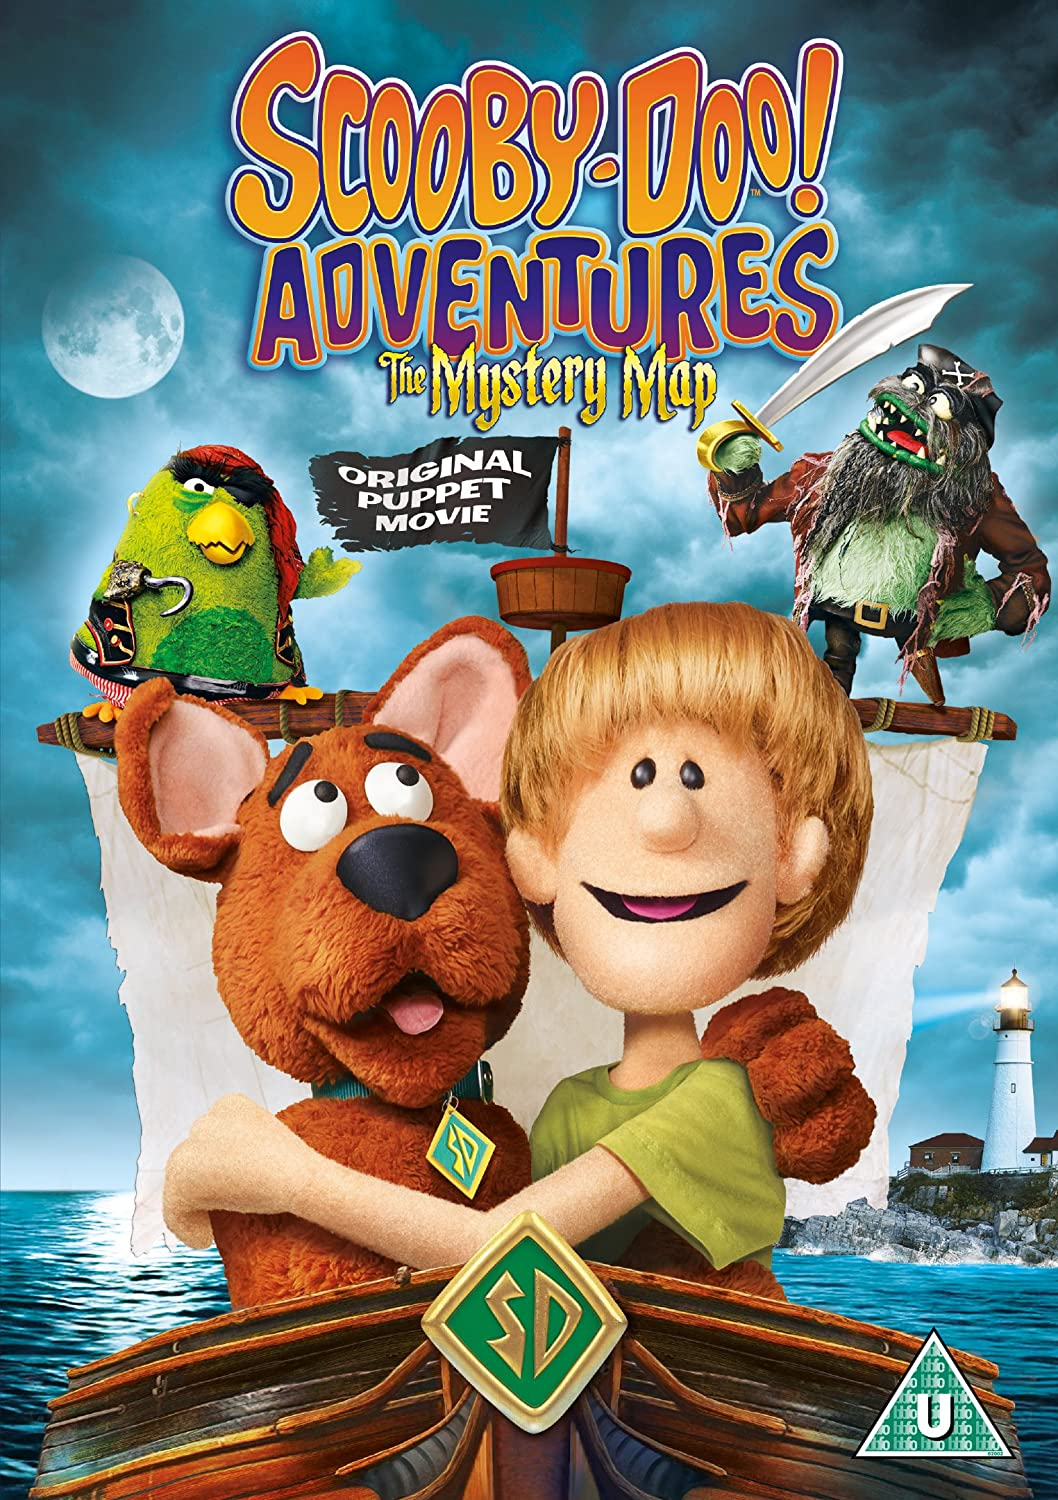 scoobydoo adventures the mystery map original puppet movie dvdamazoncouk jomac noph adam rudman david rudman tosh e maab dvd bluray. scoobydoo adventures the mystery map original puppet movie dvd